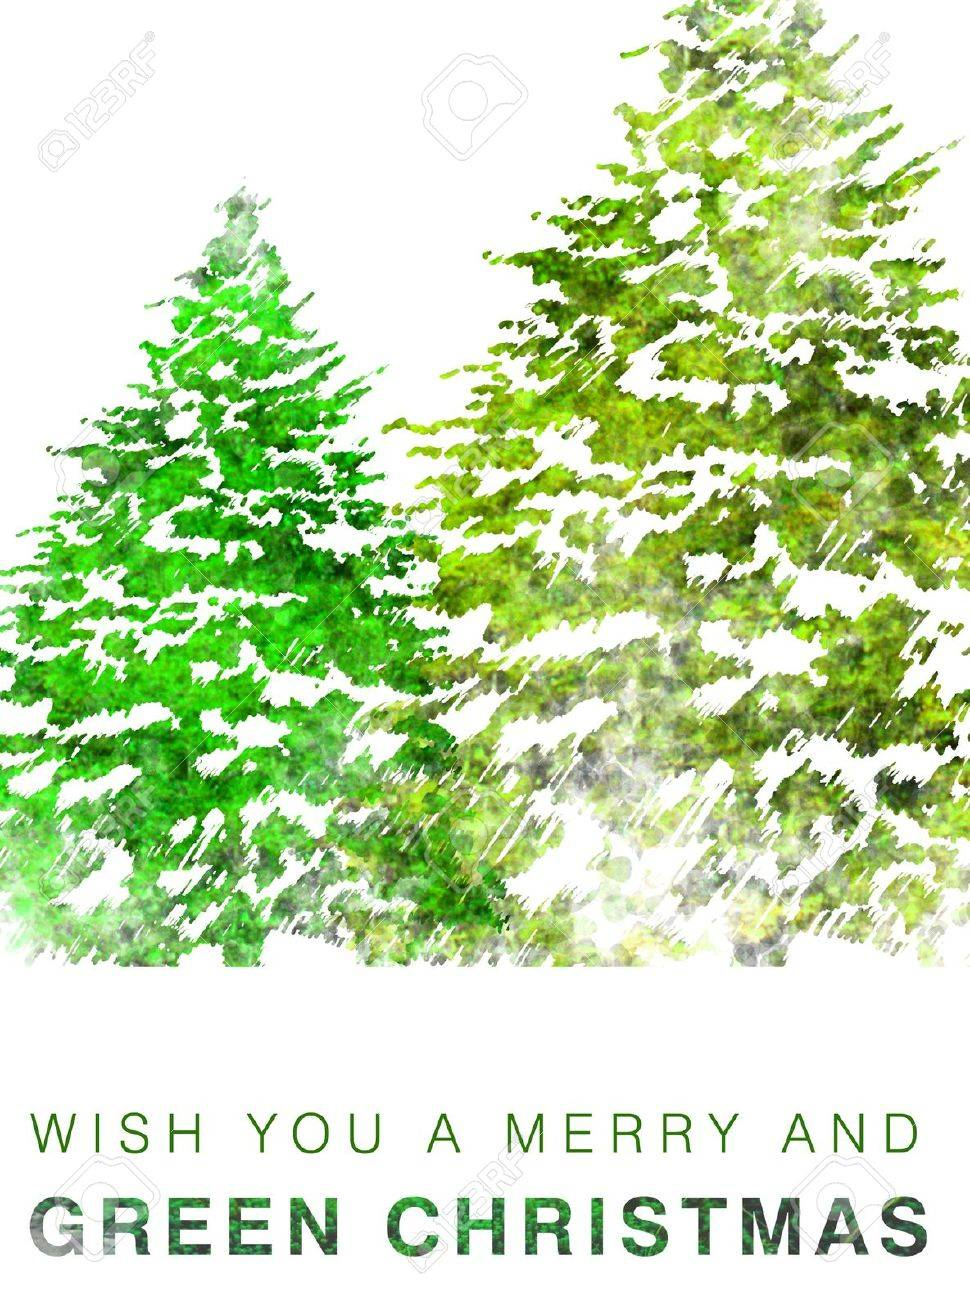 Eco Friendly Christmas Card Stock Photo, Picture And Royalty Free ...